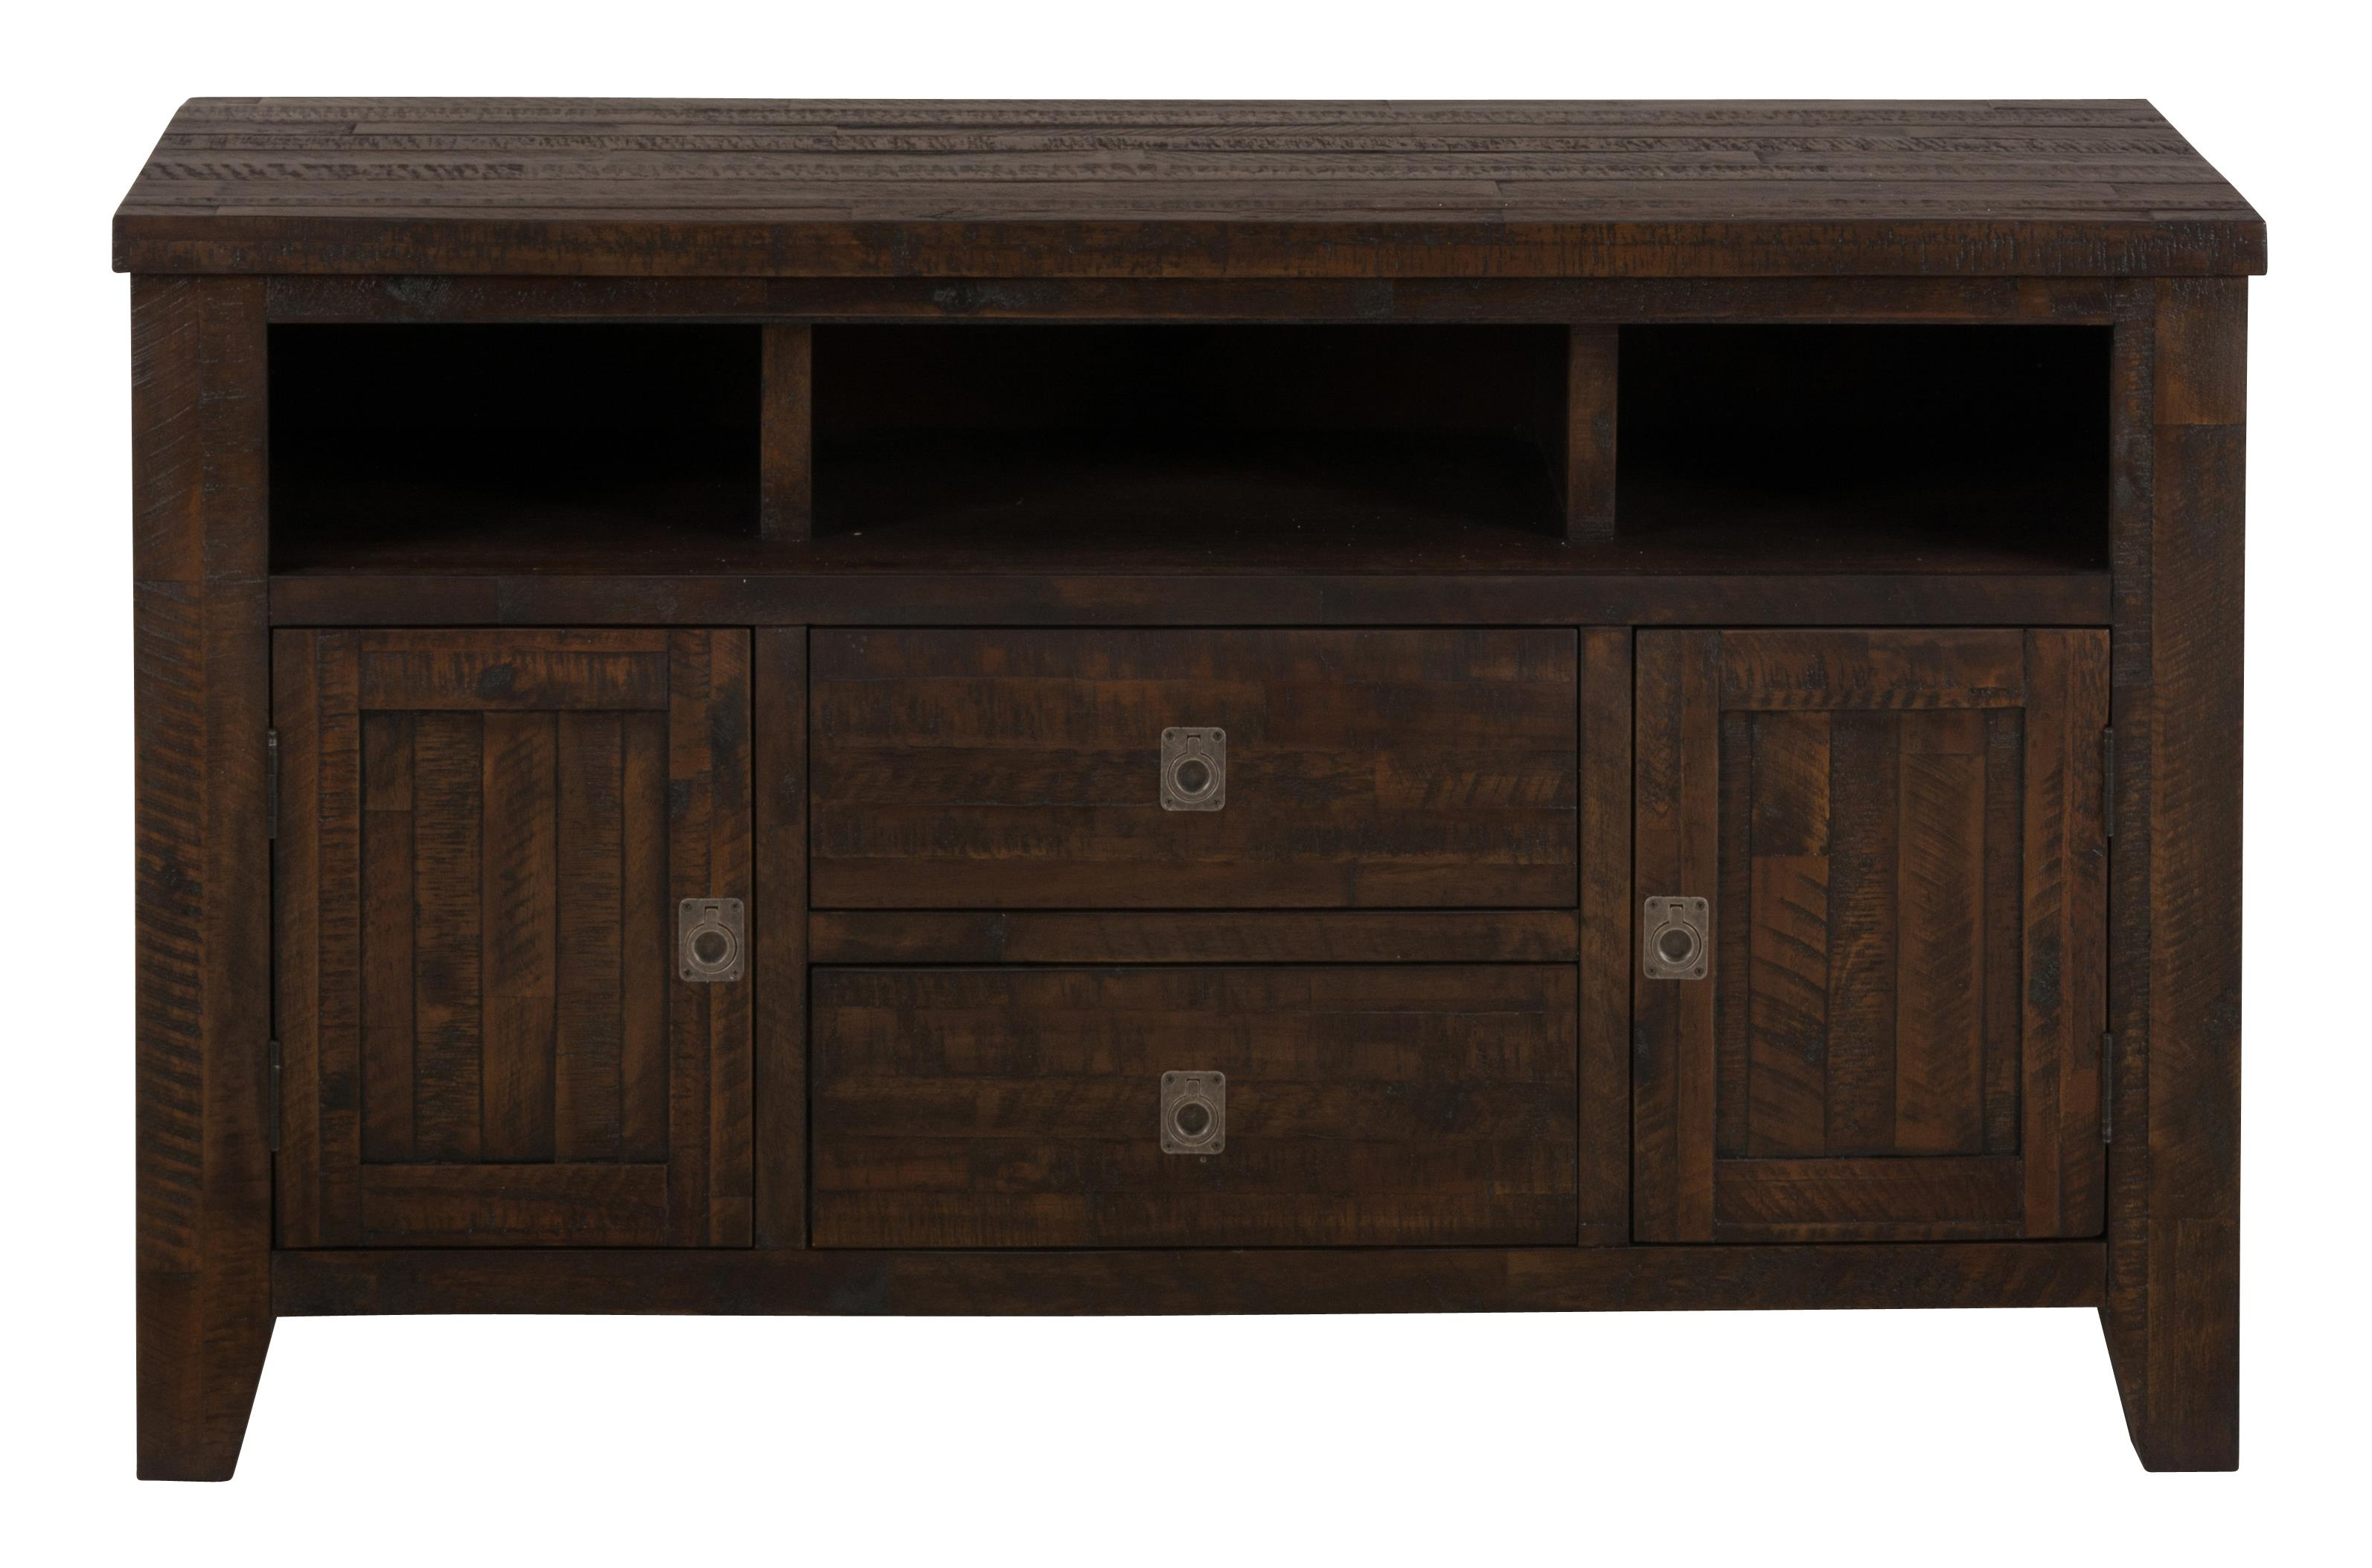 Jofran kona grove 706 50 50 media unit great american for American furniture warehouse tv stands